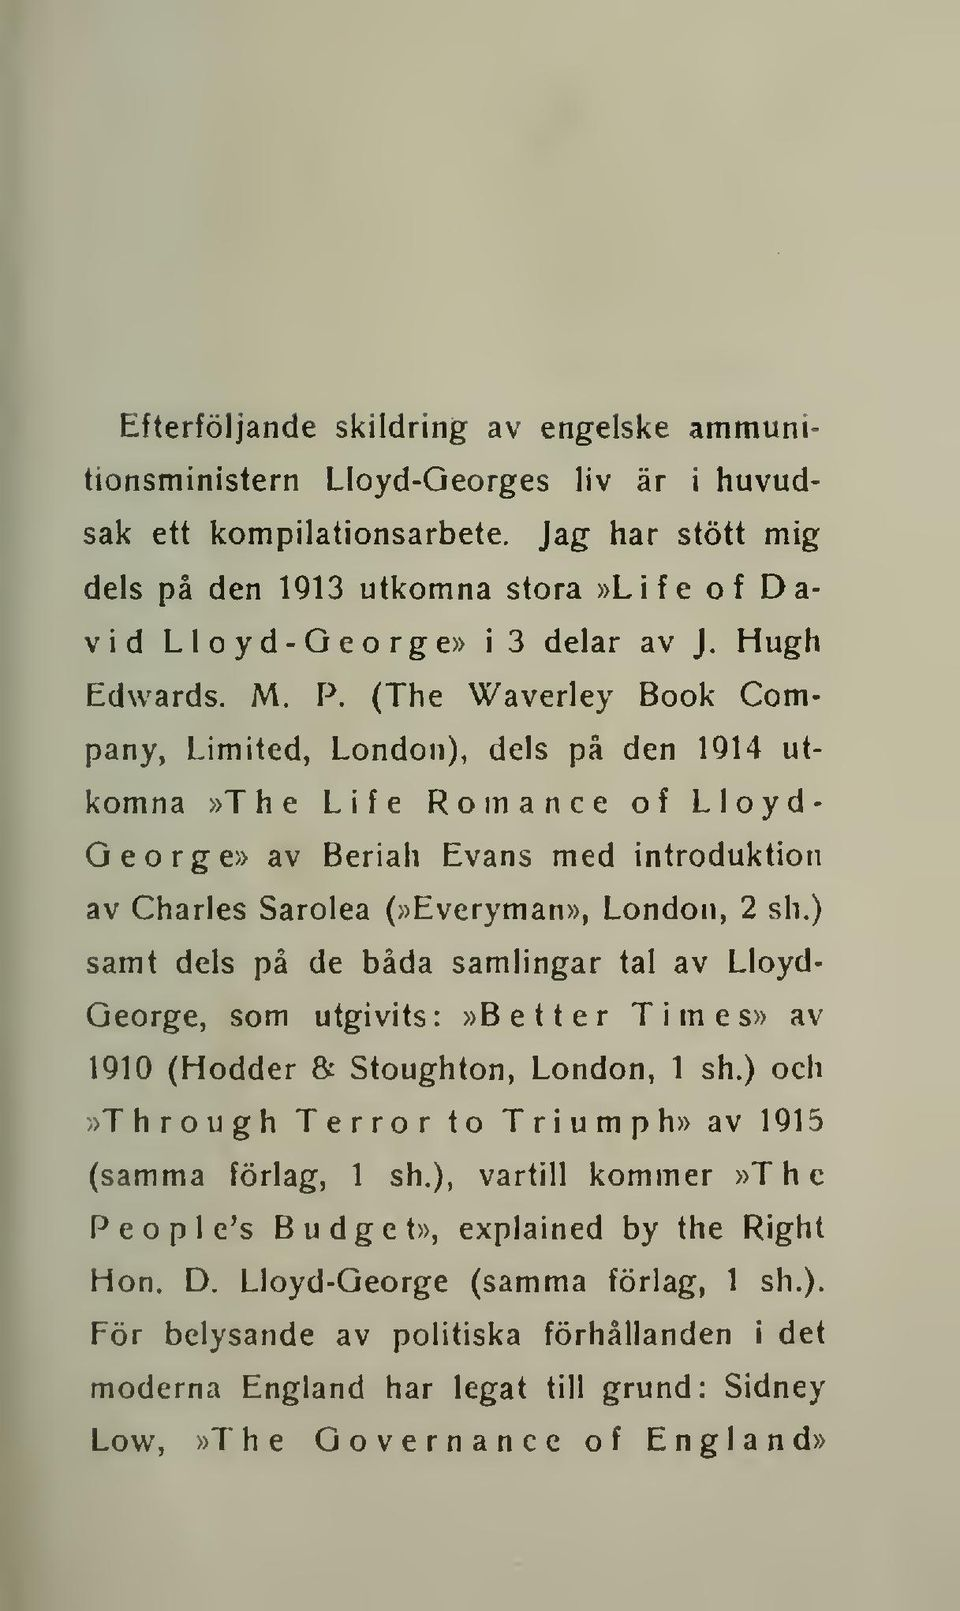 (The Waverley Book Company, Limited, London), dels på den 1914 utkomna»the Life Romance of Lloyd- George» av Beriah Evans med introduktion av Charles Sarolea (»Everyman», London, 2 sh.